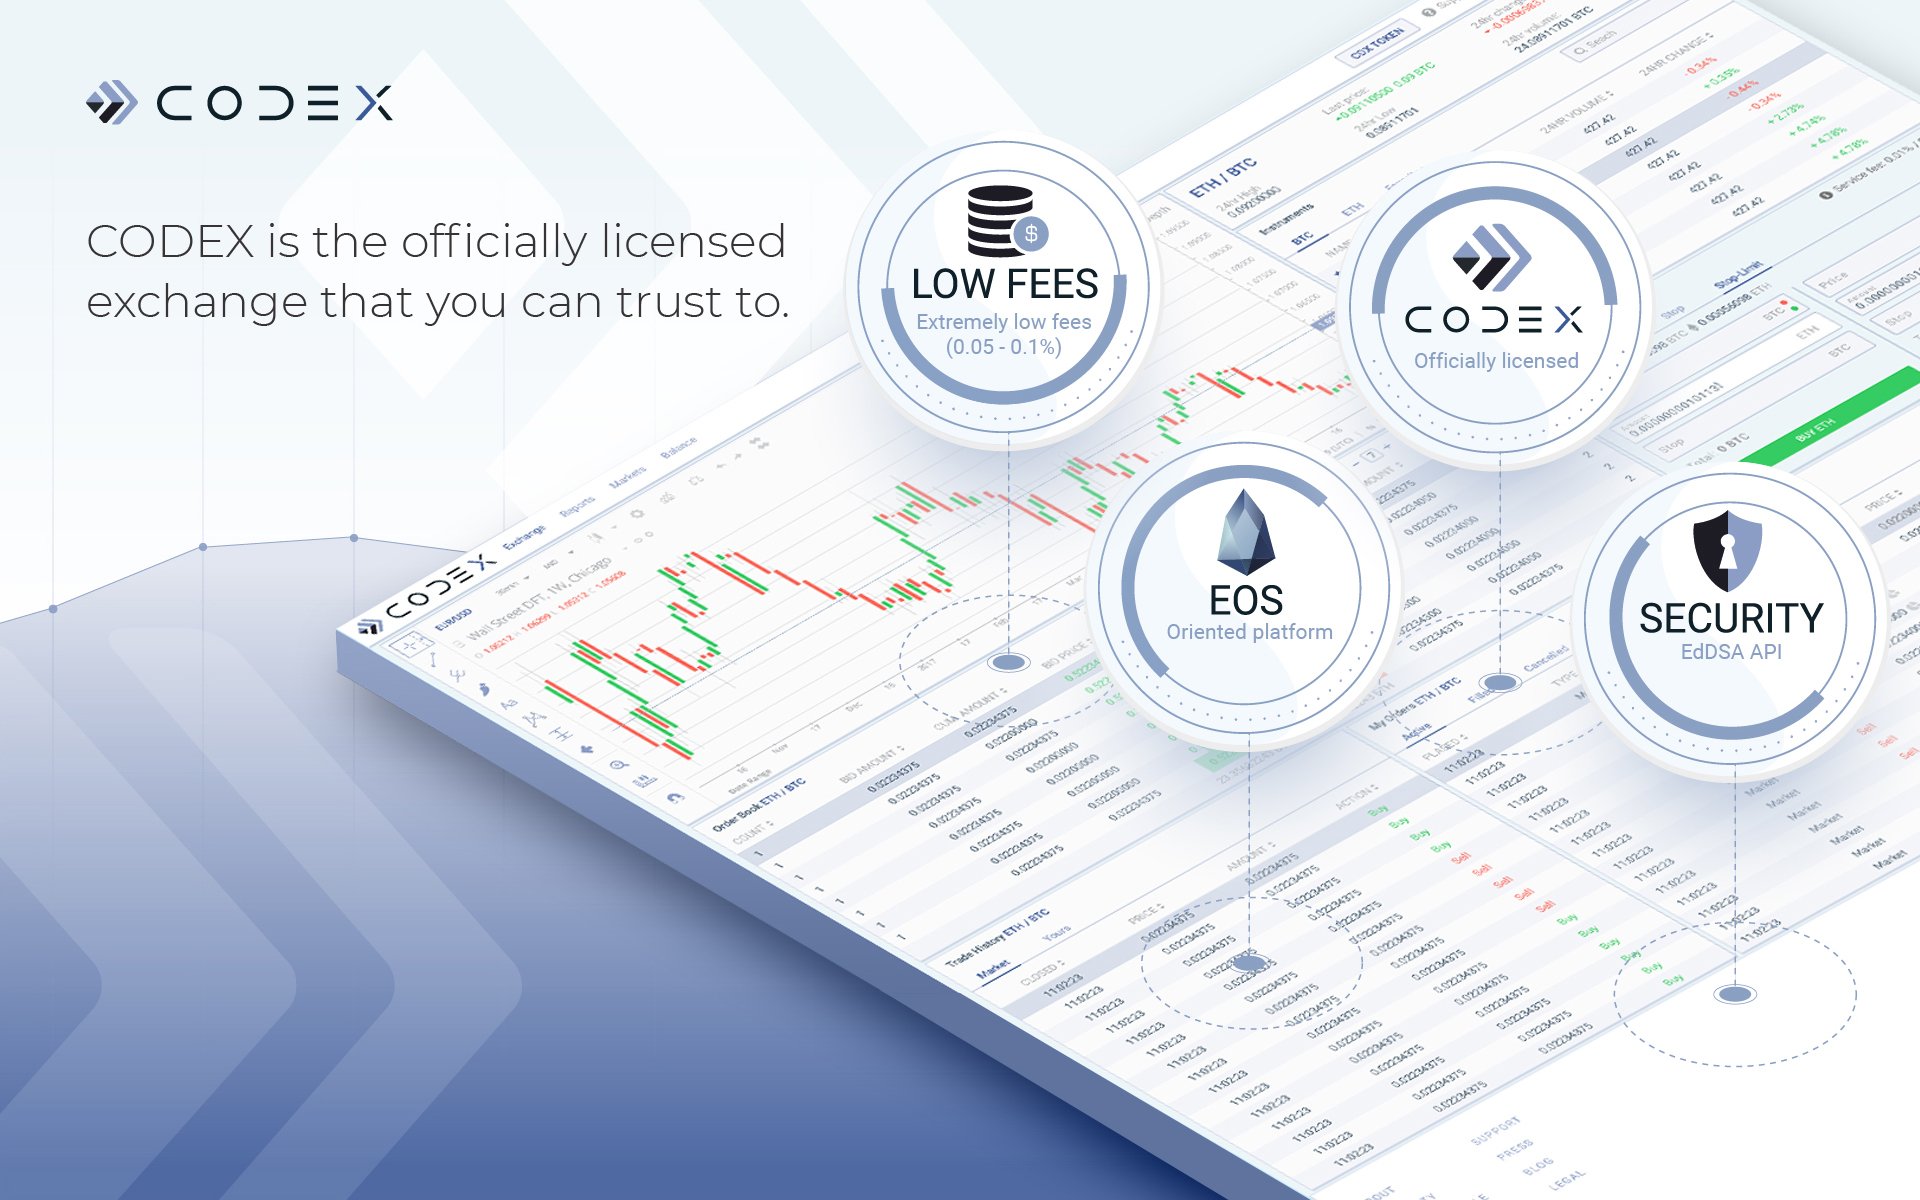 CODEX: The Exchange That Changes the Way You Trade Crypto